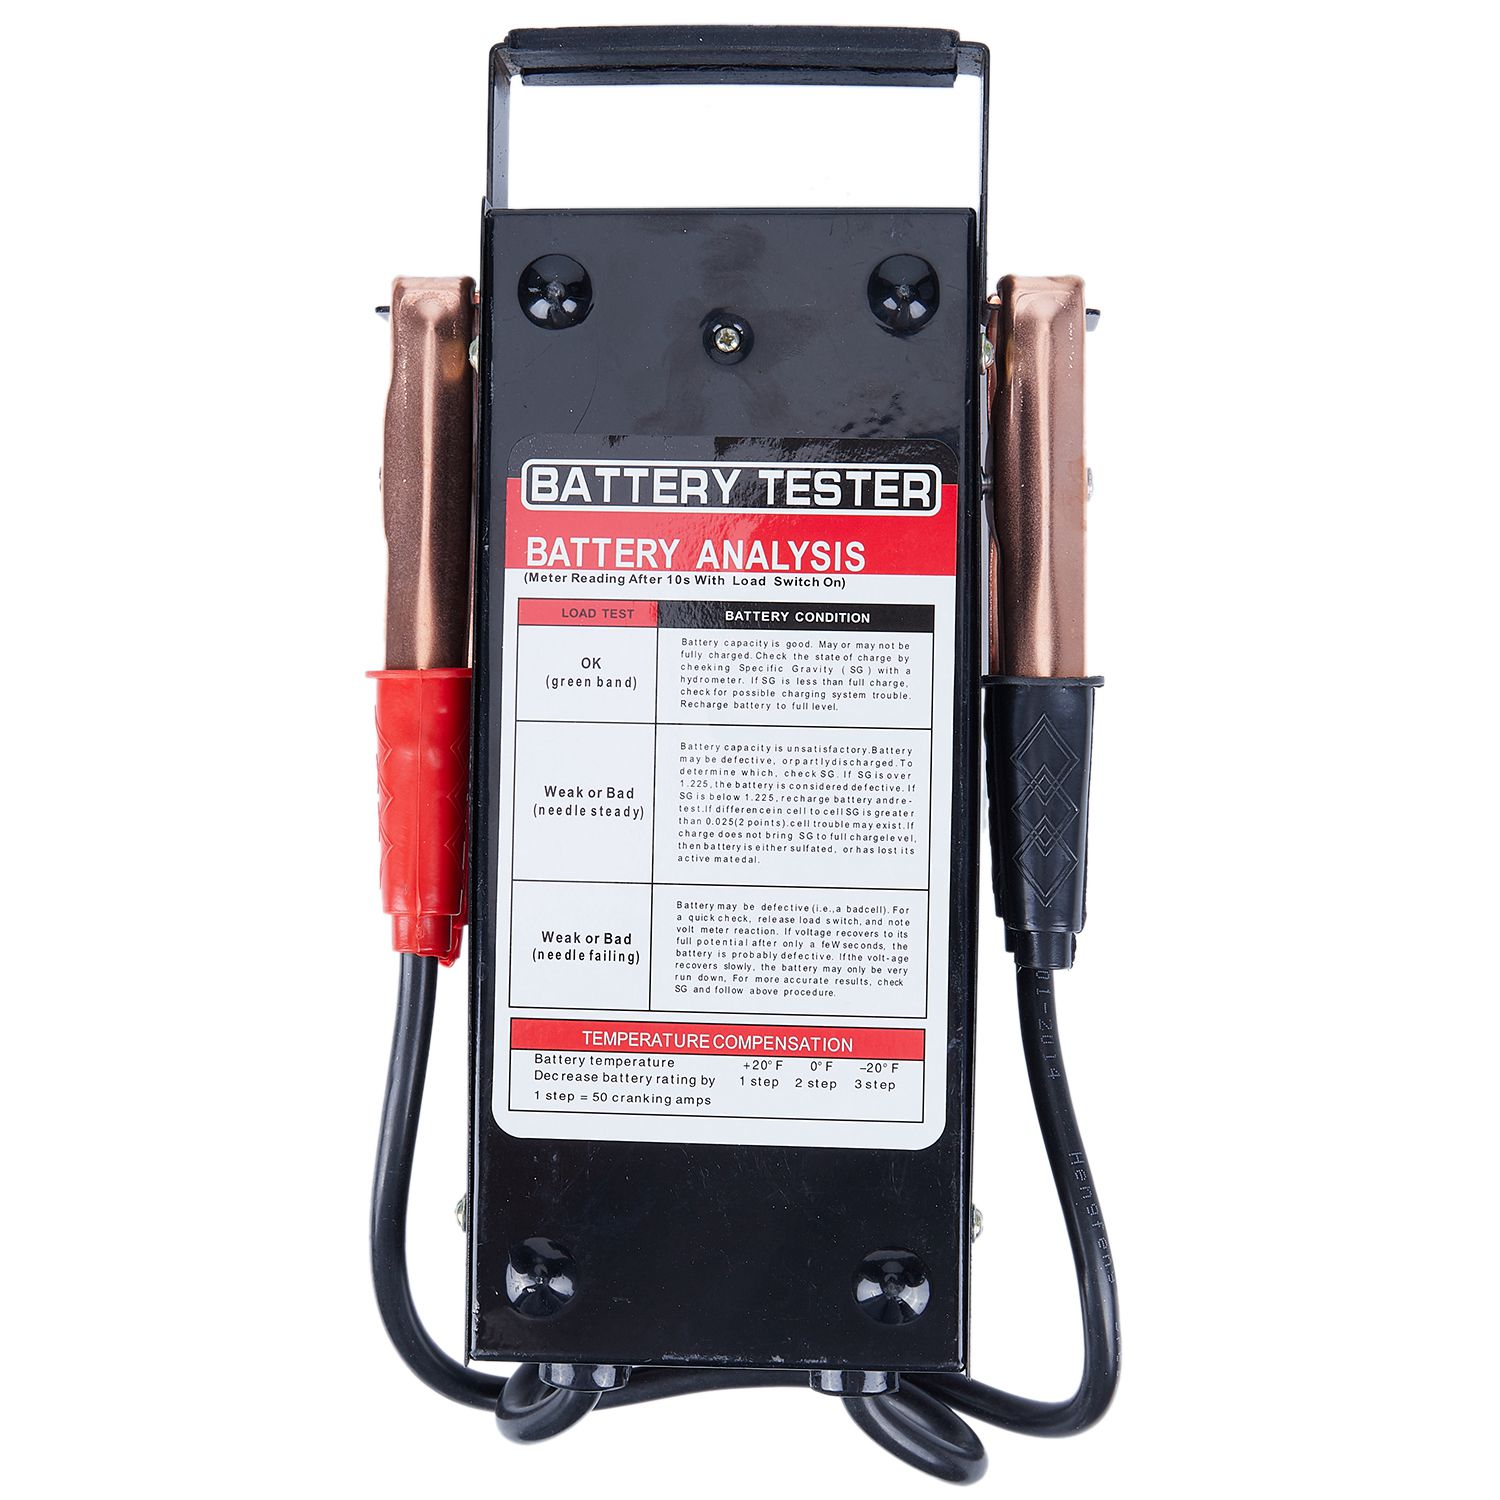 Battery Load Tester Charge Checker 6V 12V Accurate for Cars Farm Vehicles Trucks